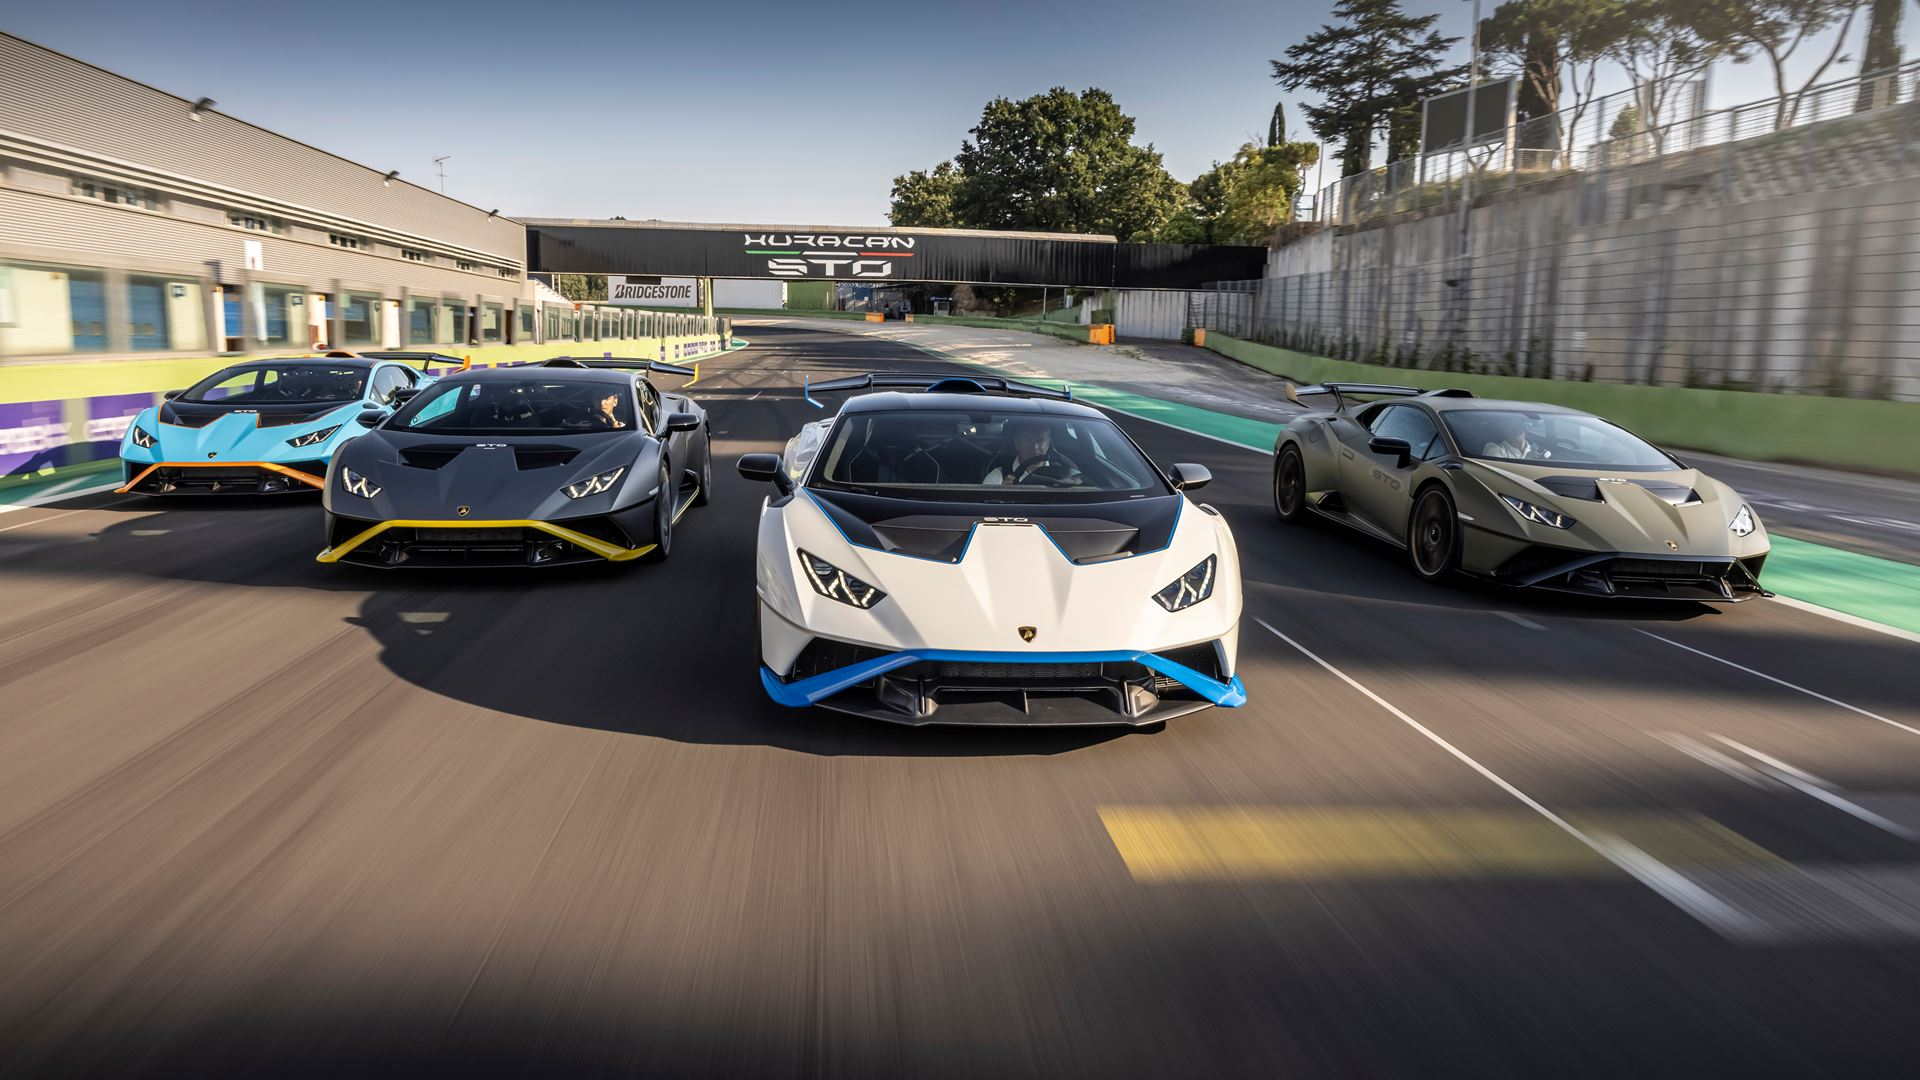 Lamborghini Huracán STO finally unleashed First test-drives in Rome and at the Autodromo Piero Taruffi in Vallelunga - Image 8